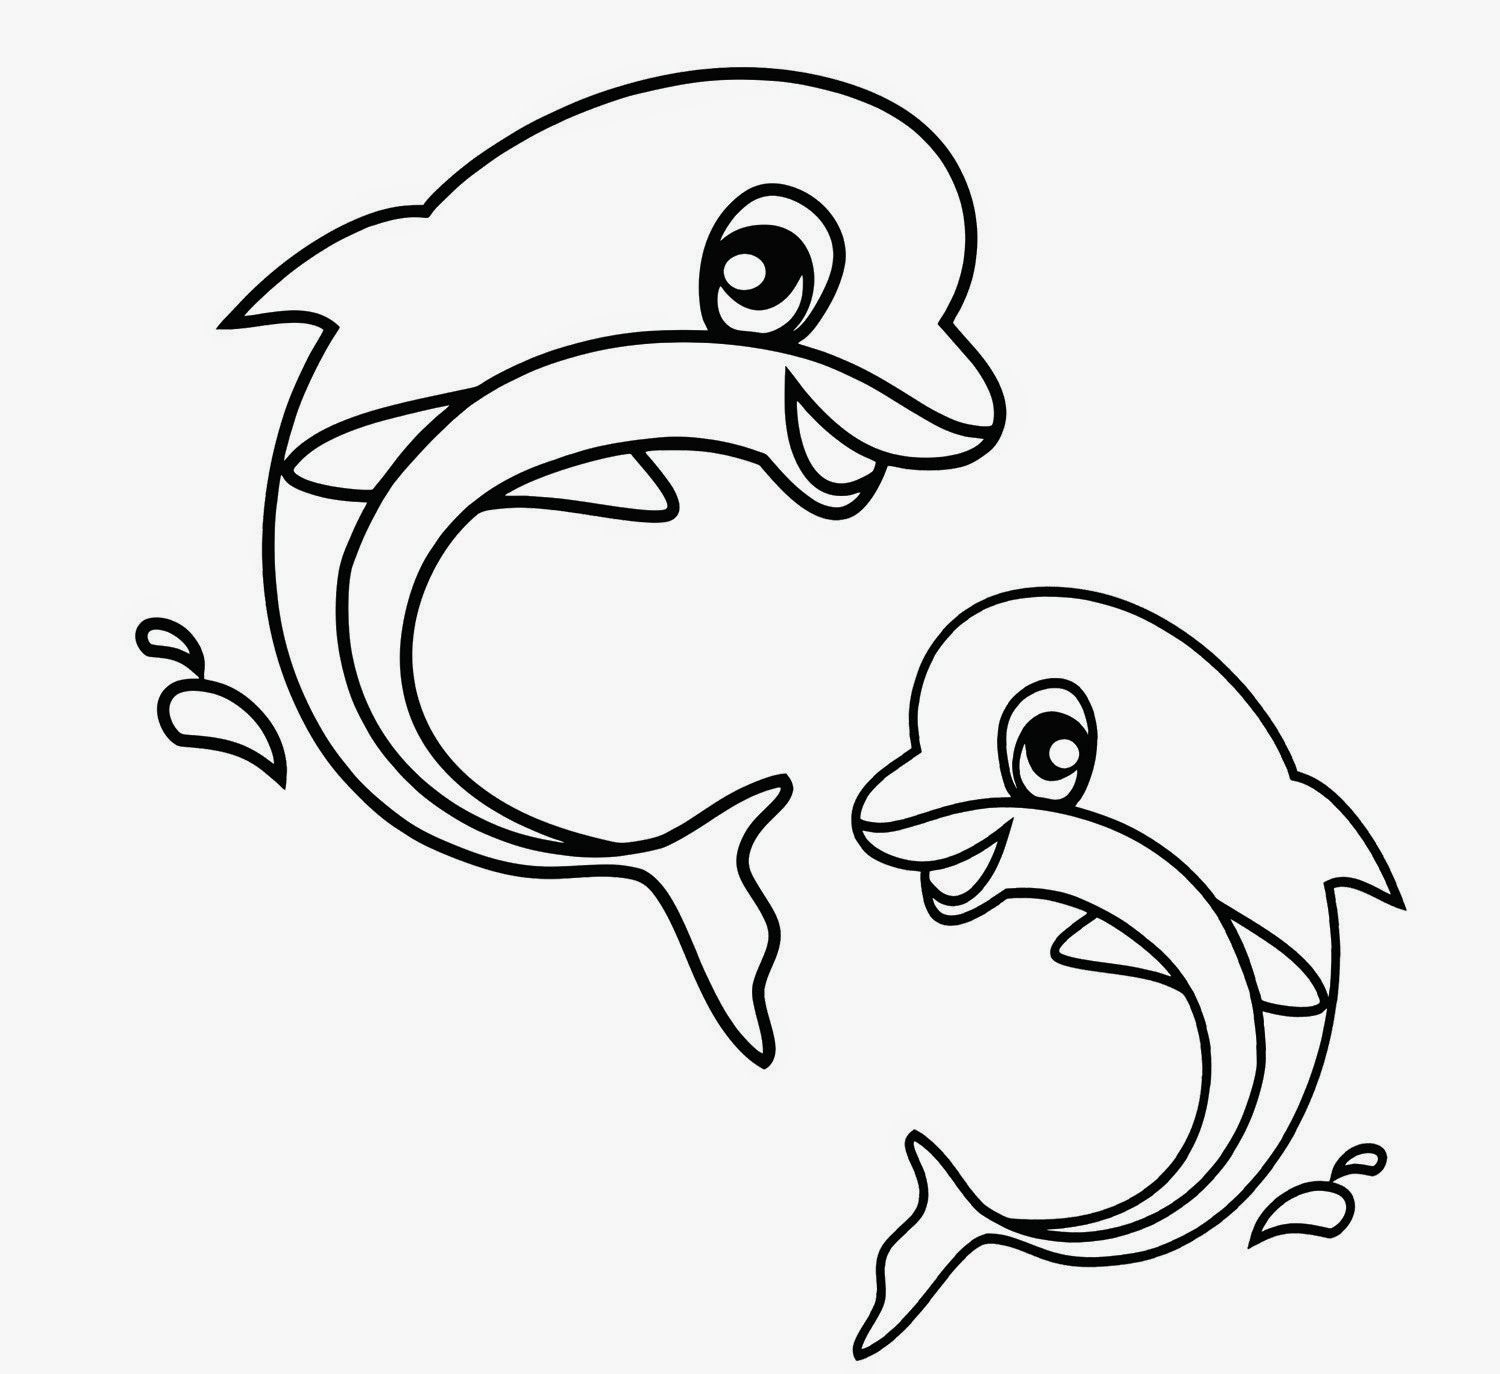 free dolphin coloring pages dolphin uncommon favorite of common coloring pages dolphin free pages coloring